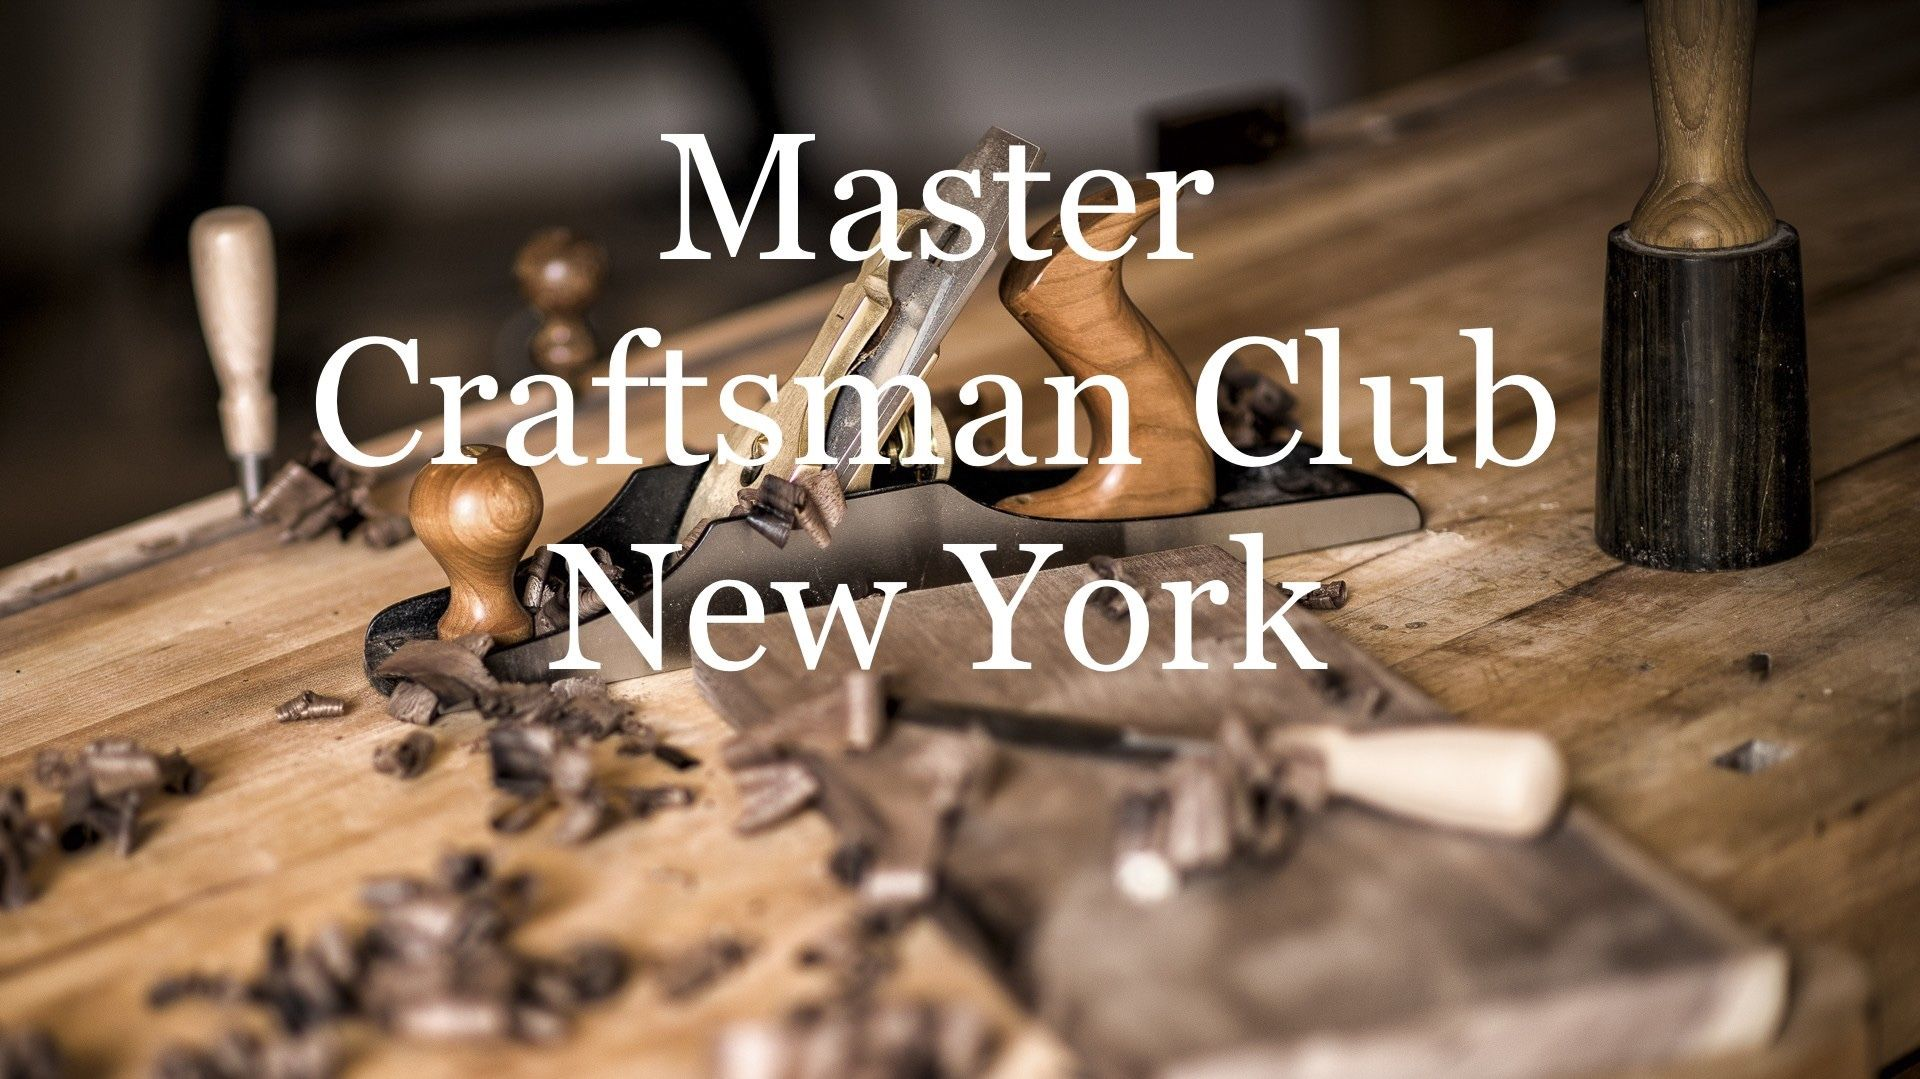 Master Craftsman Club Woodworking/Metalworking New York